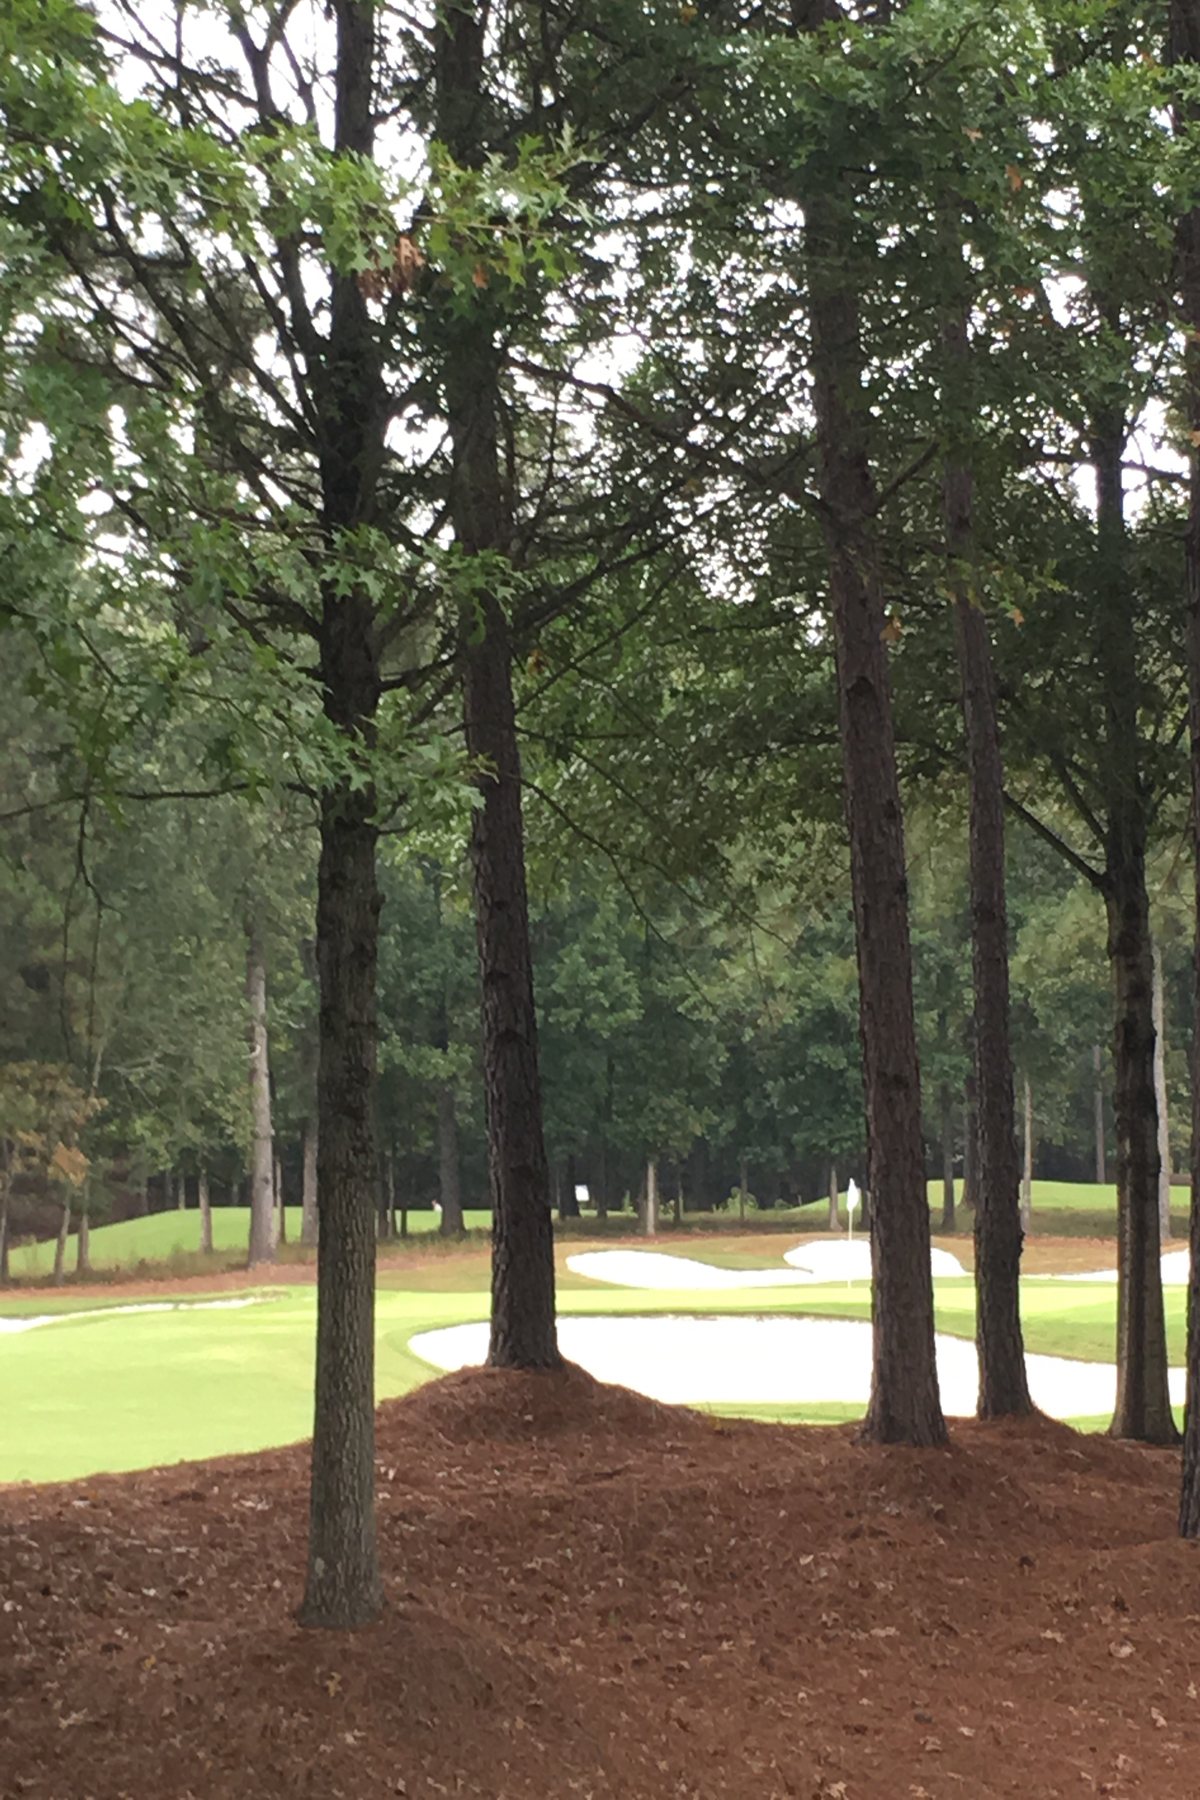 Land for Sale at One Of Last Available Larger Estate Lots 1009 Crescent River Pass Suwanee, Georgia 30024 United States